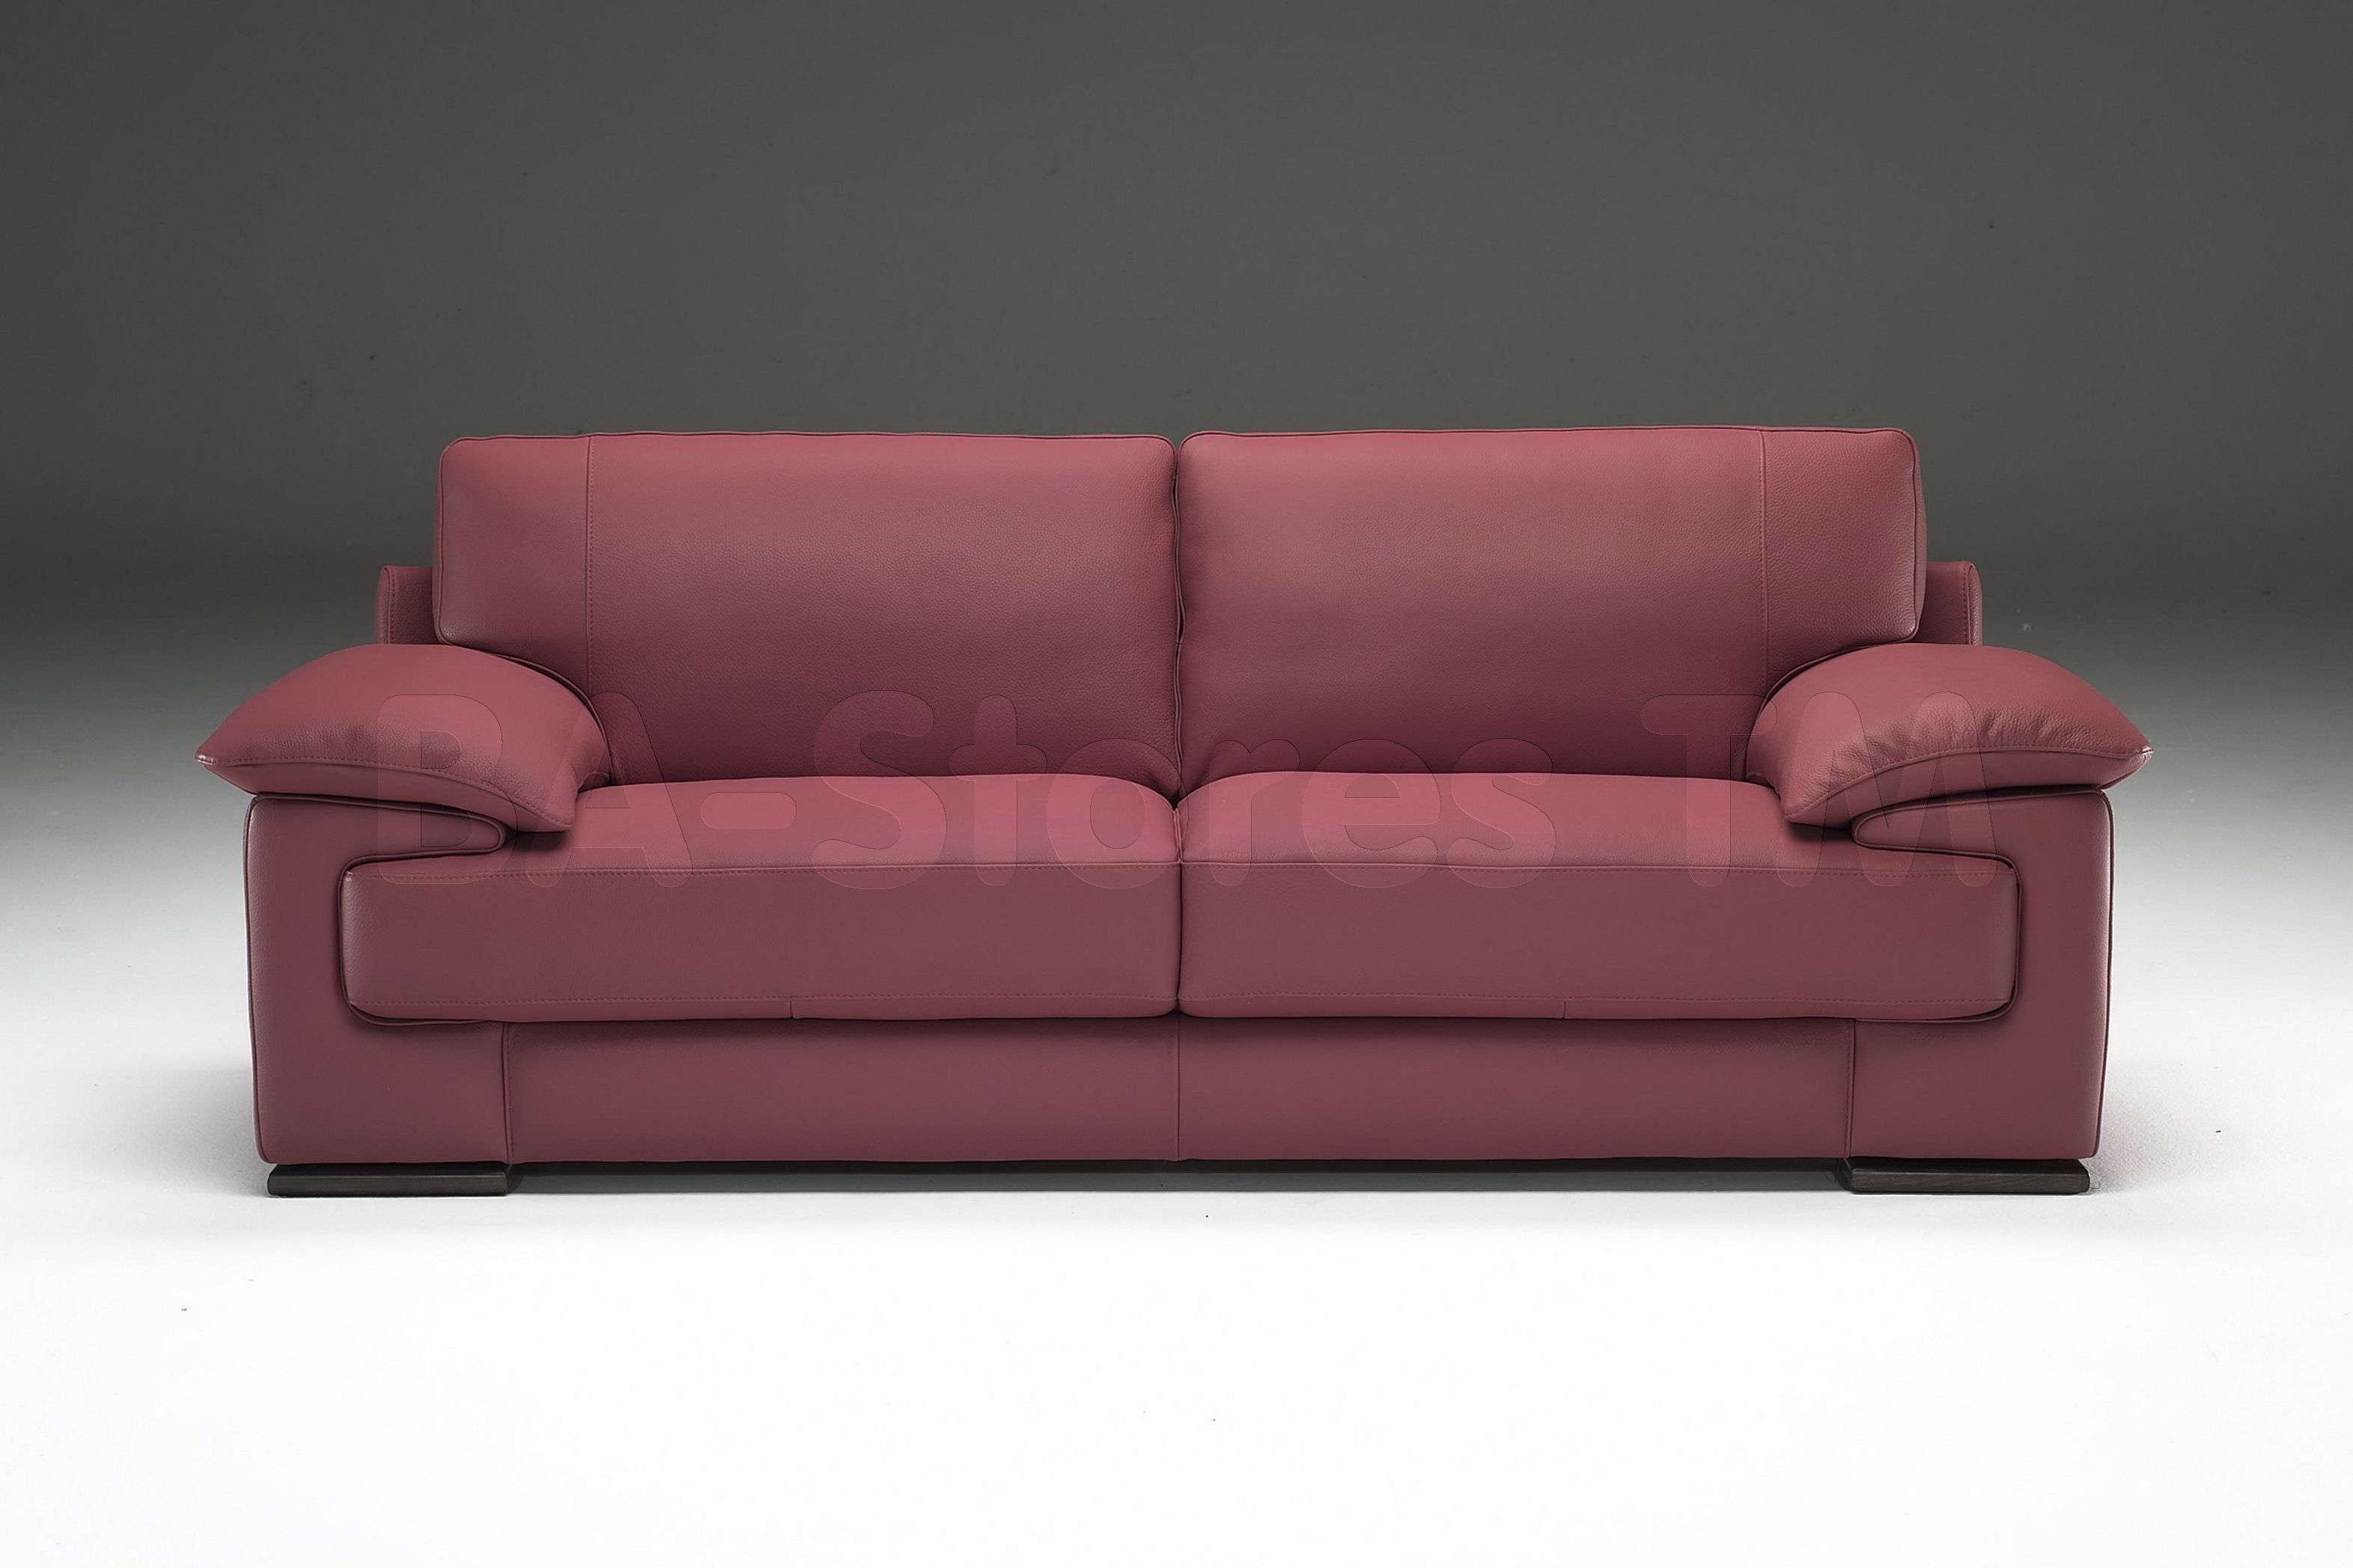 Natuzzi A486 Sofa Leather Furniture Expo